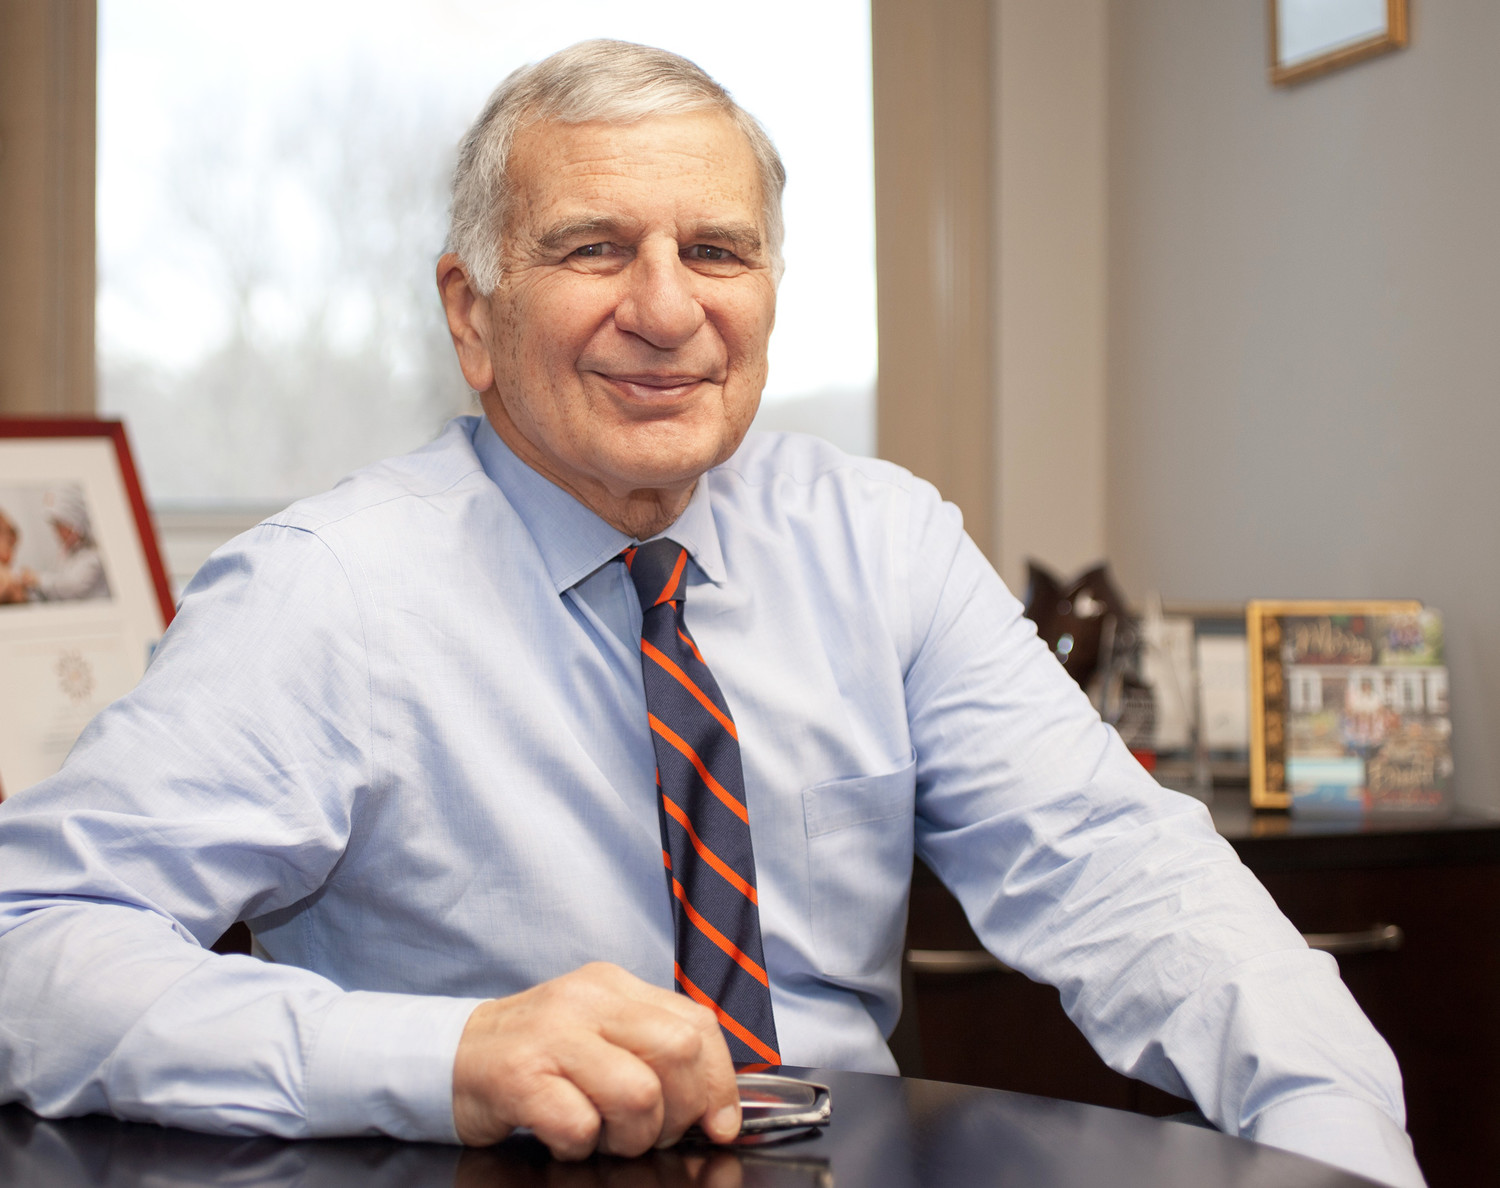 Lou Giancola, president and CEO of South County Health, recently announced his retirement.